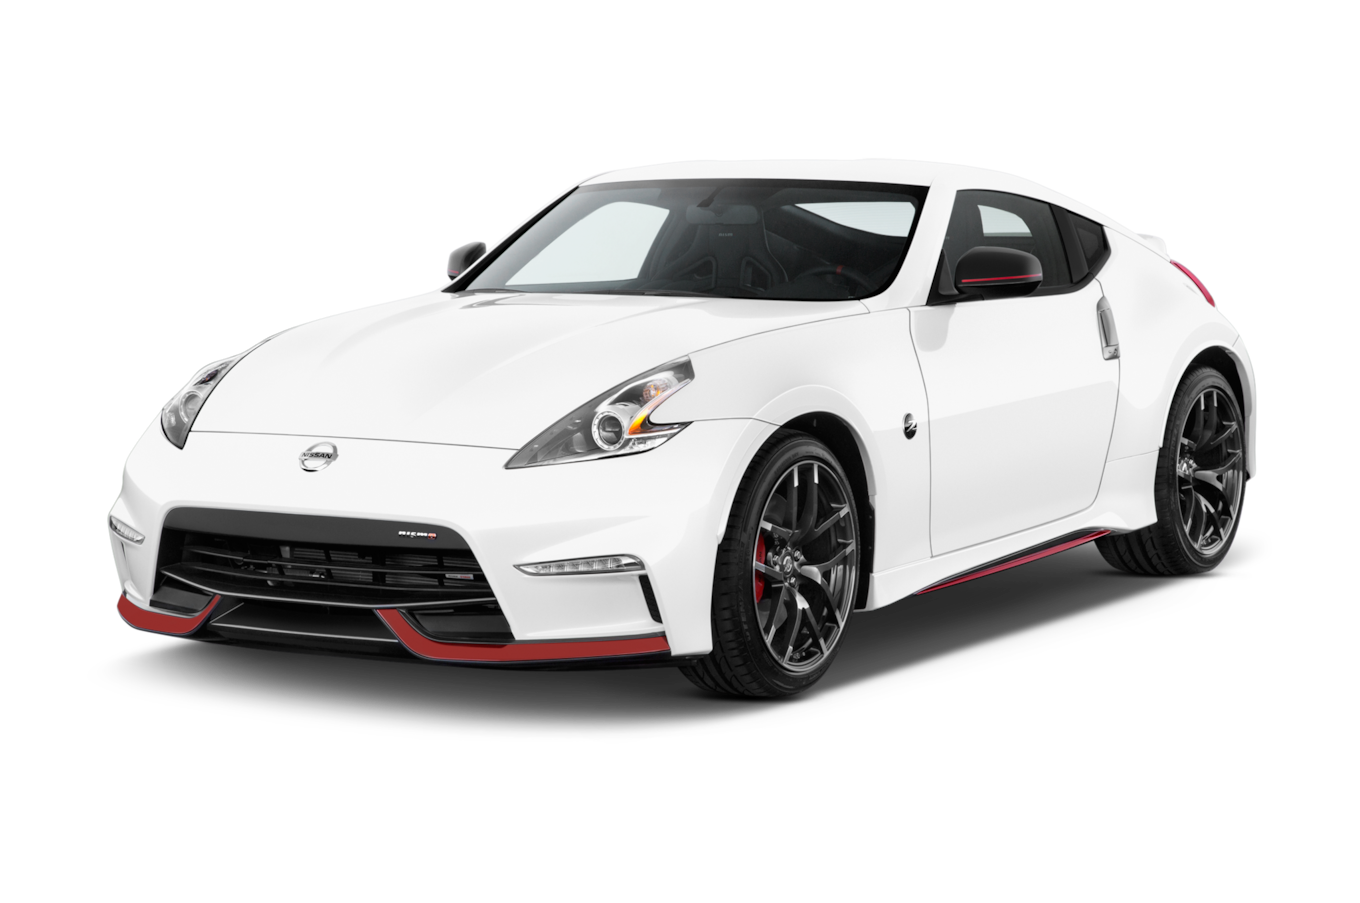 94 The Best 2019 Nissan 270Z Images